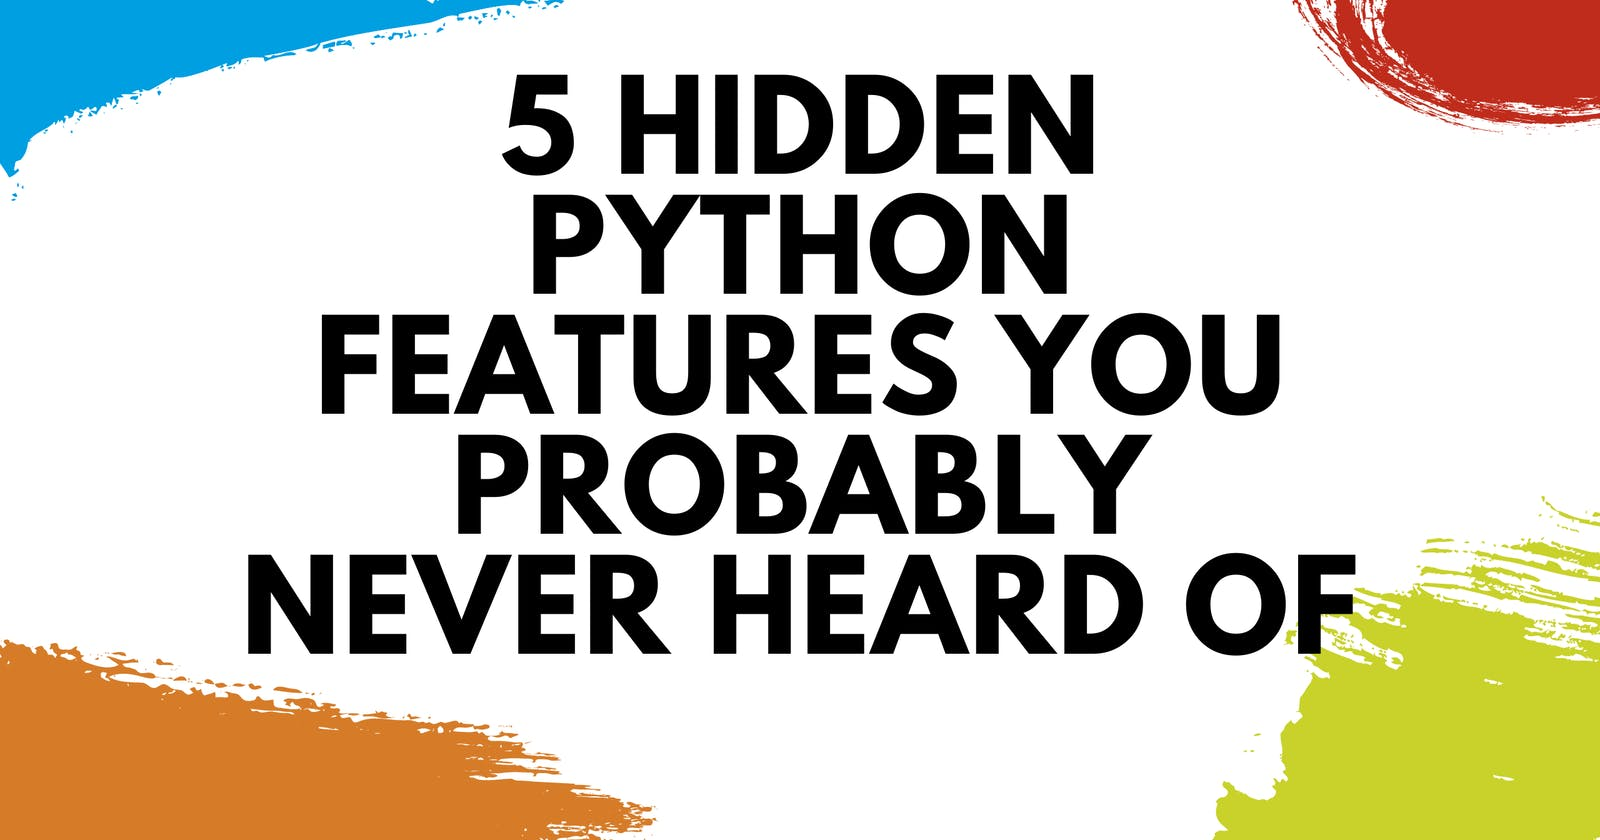 5 Hidden Python Features You Probably Never Heard Of